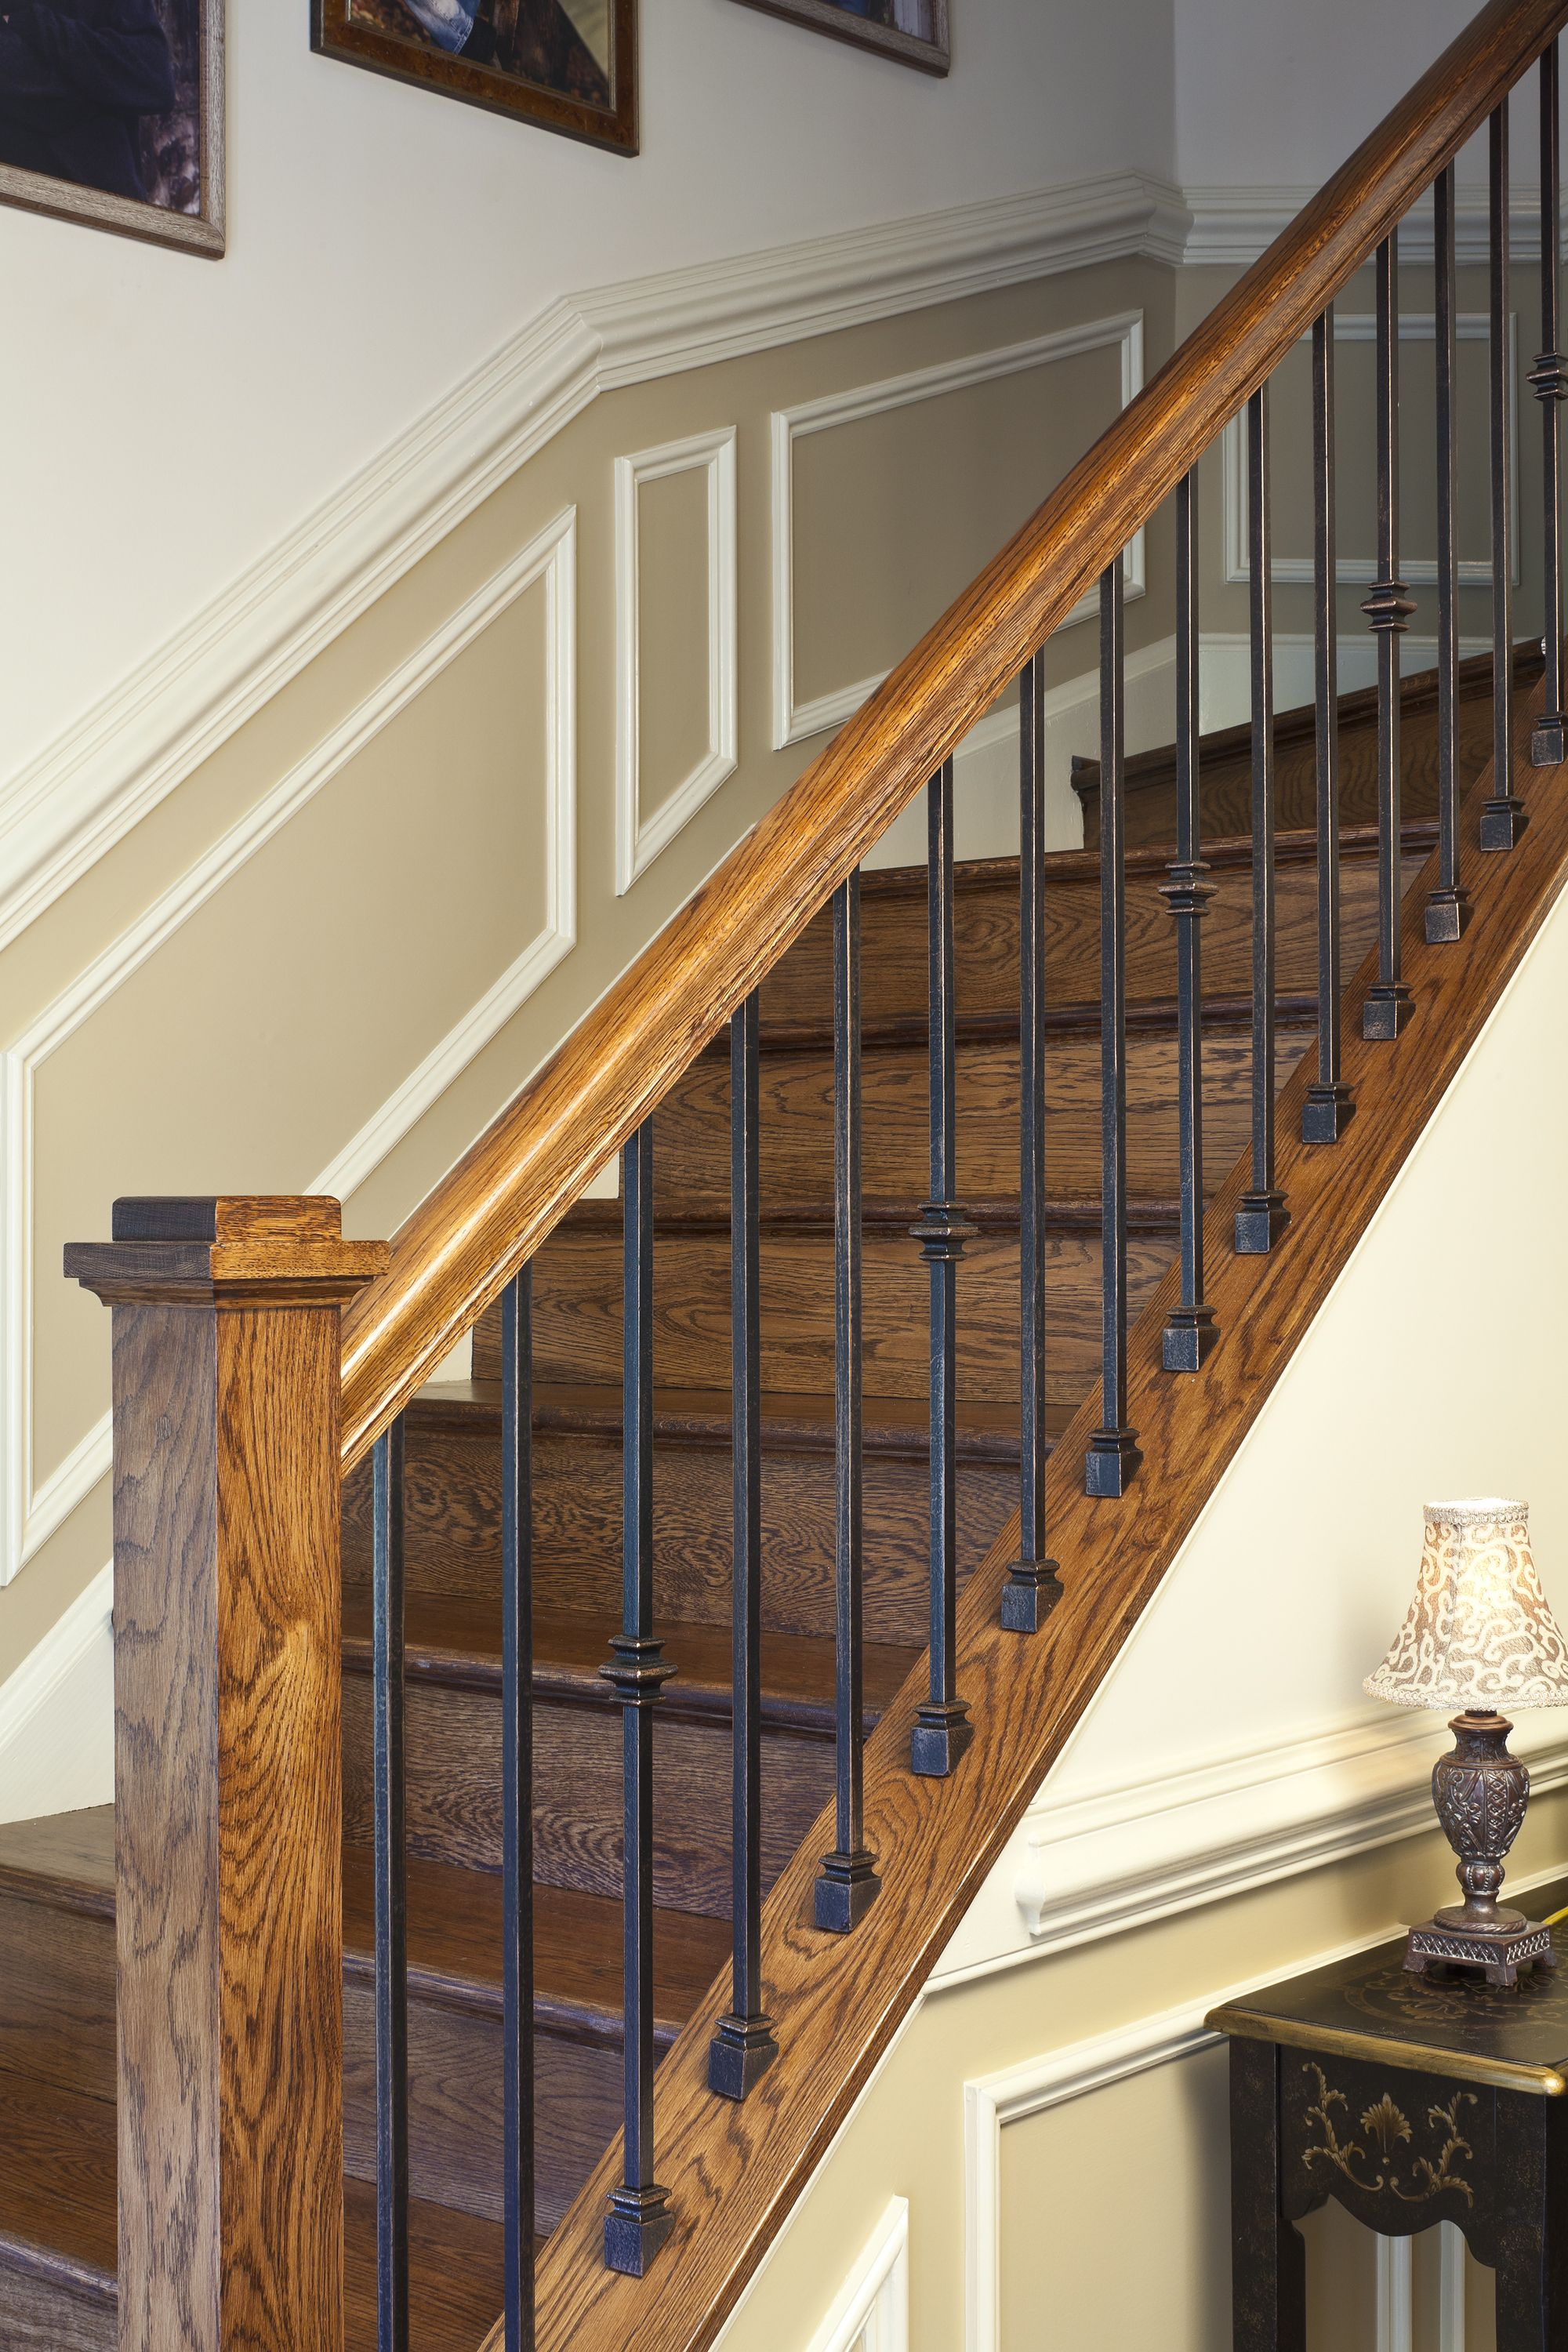 Custom Fabricated Wrought Iron Spindles With Stained Rail   Indoor Railings For Steps